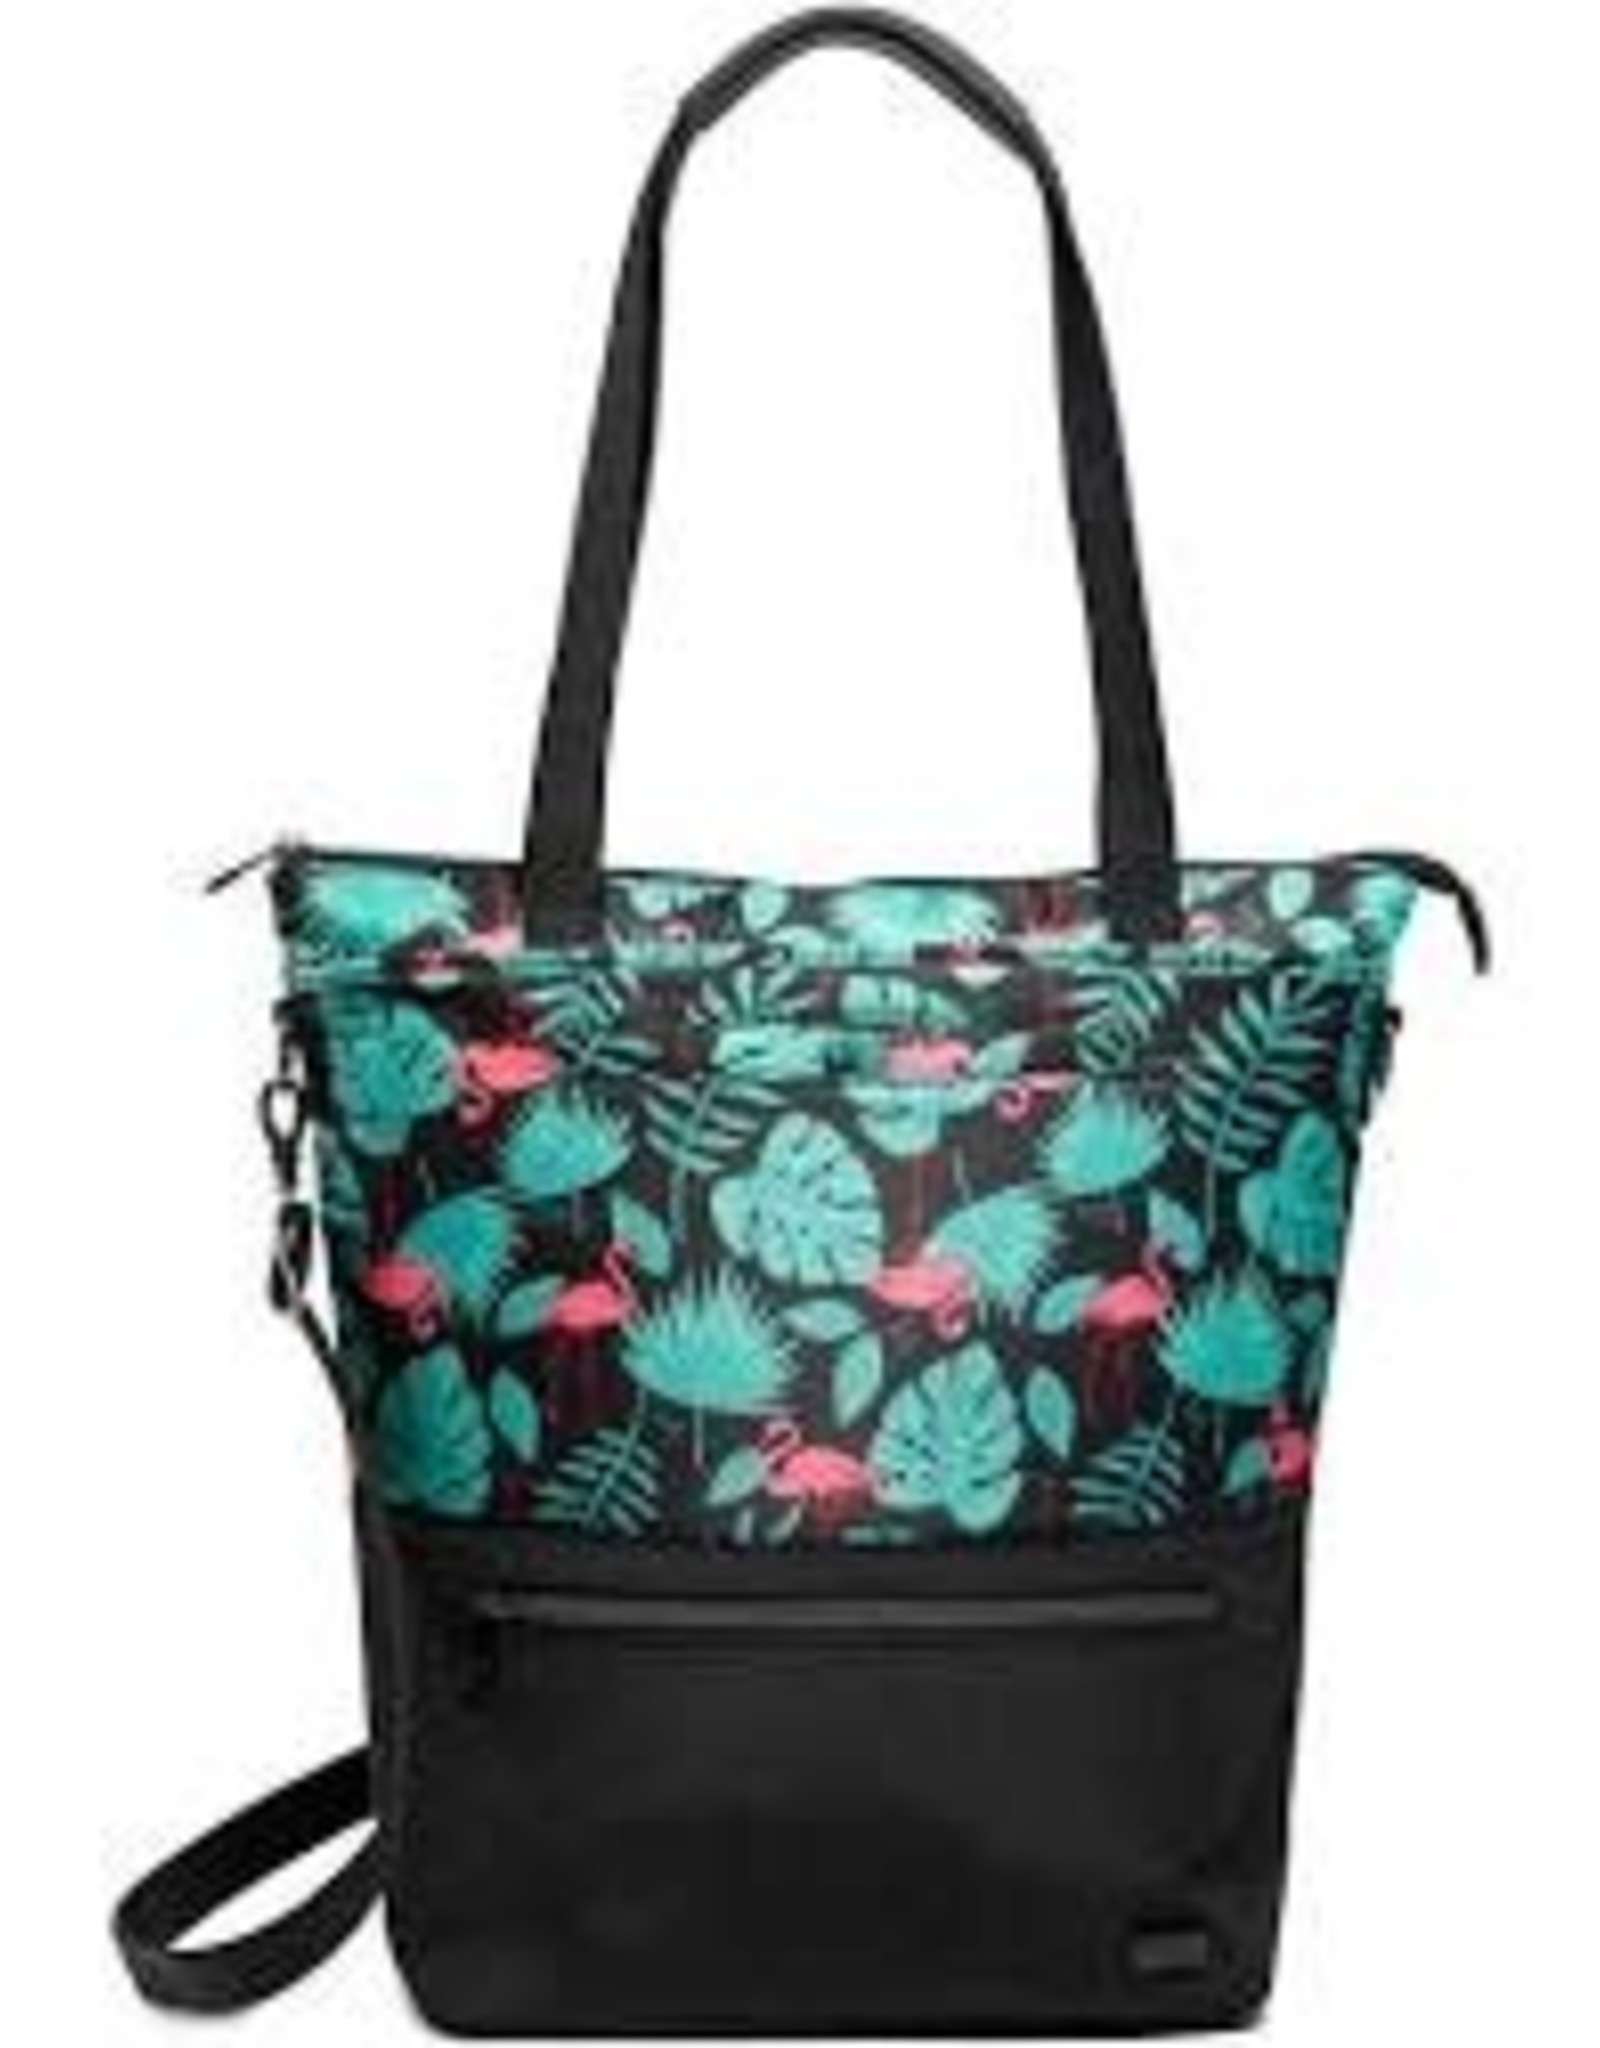 Lug Whirl Flamingo Black Tote Bag